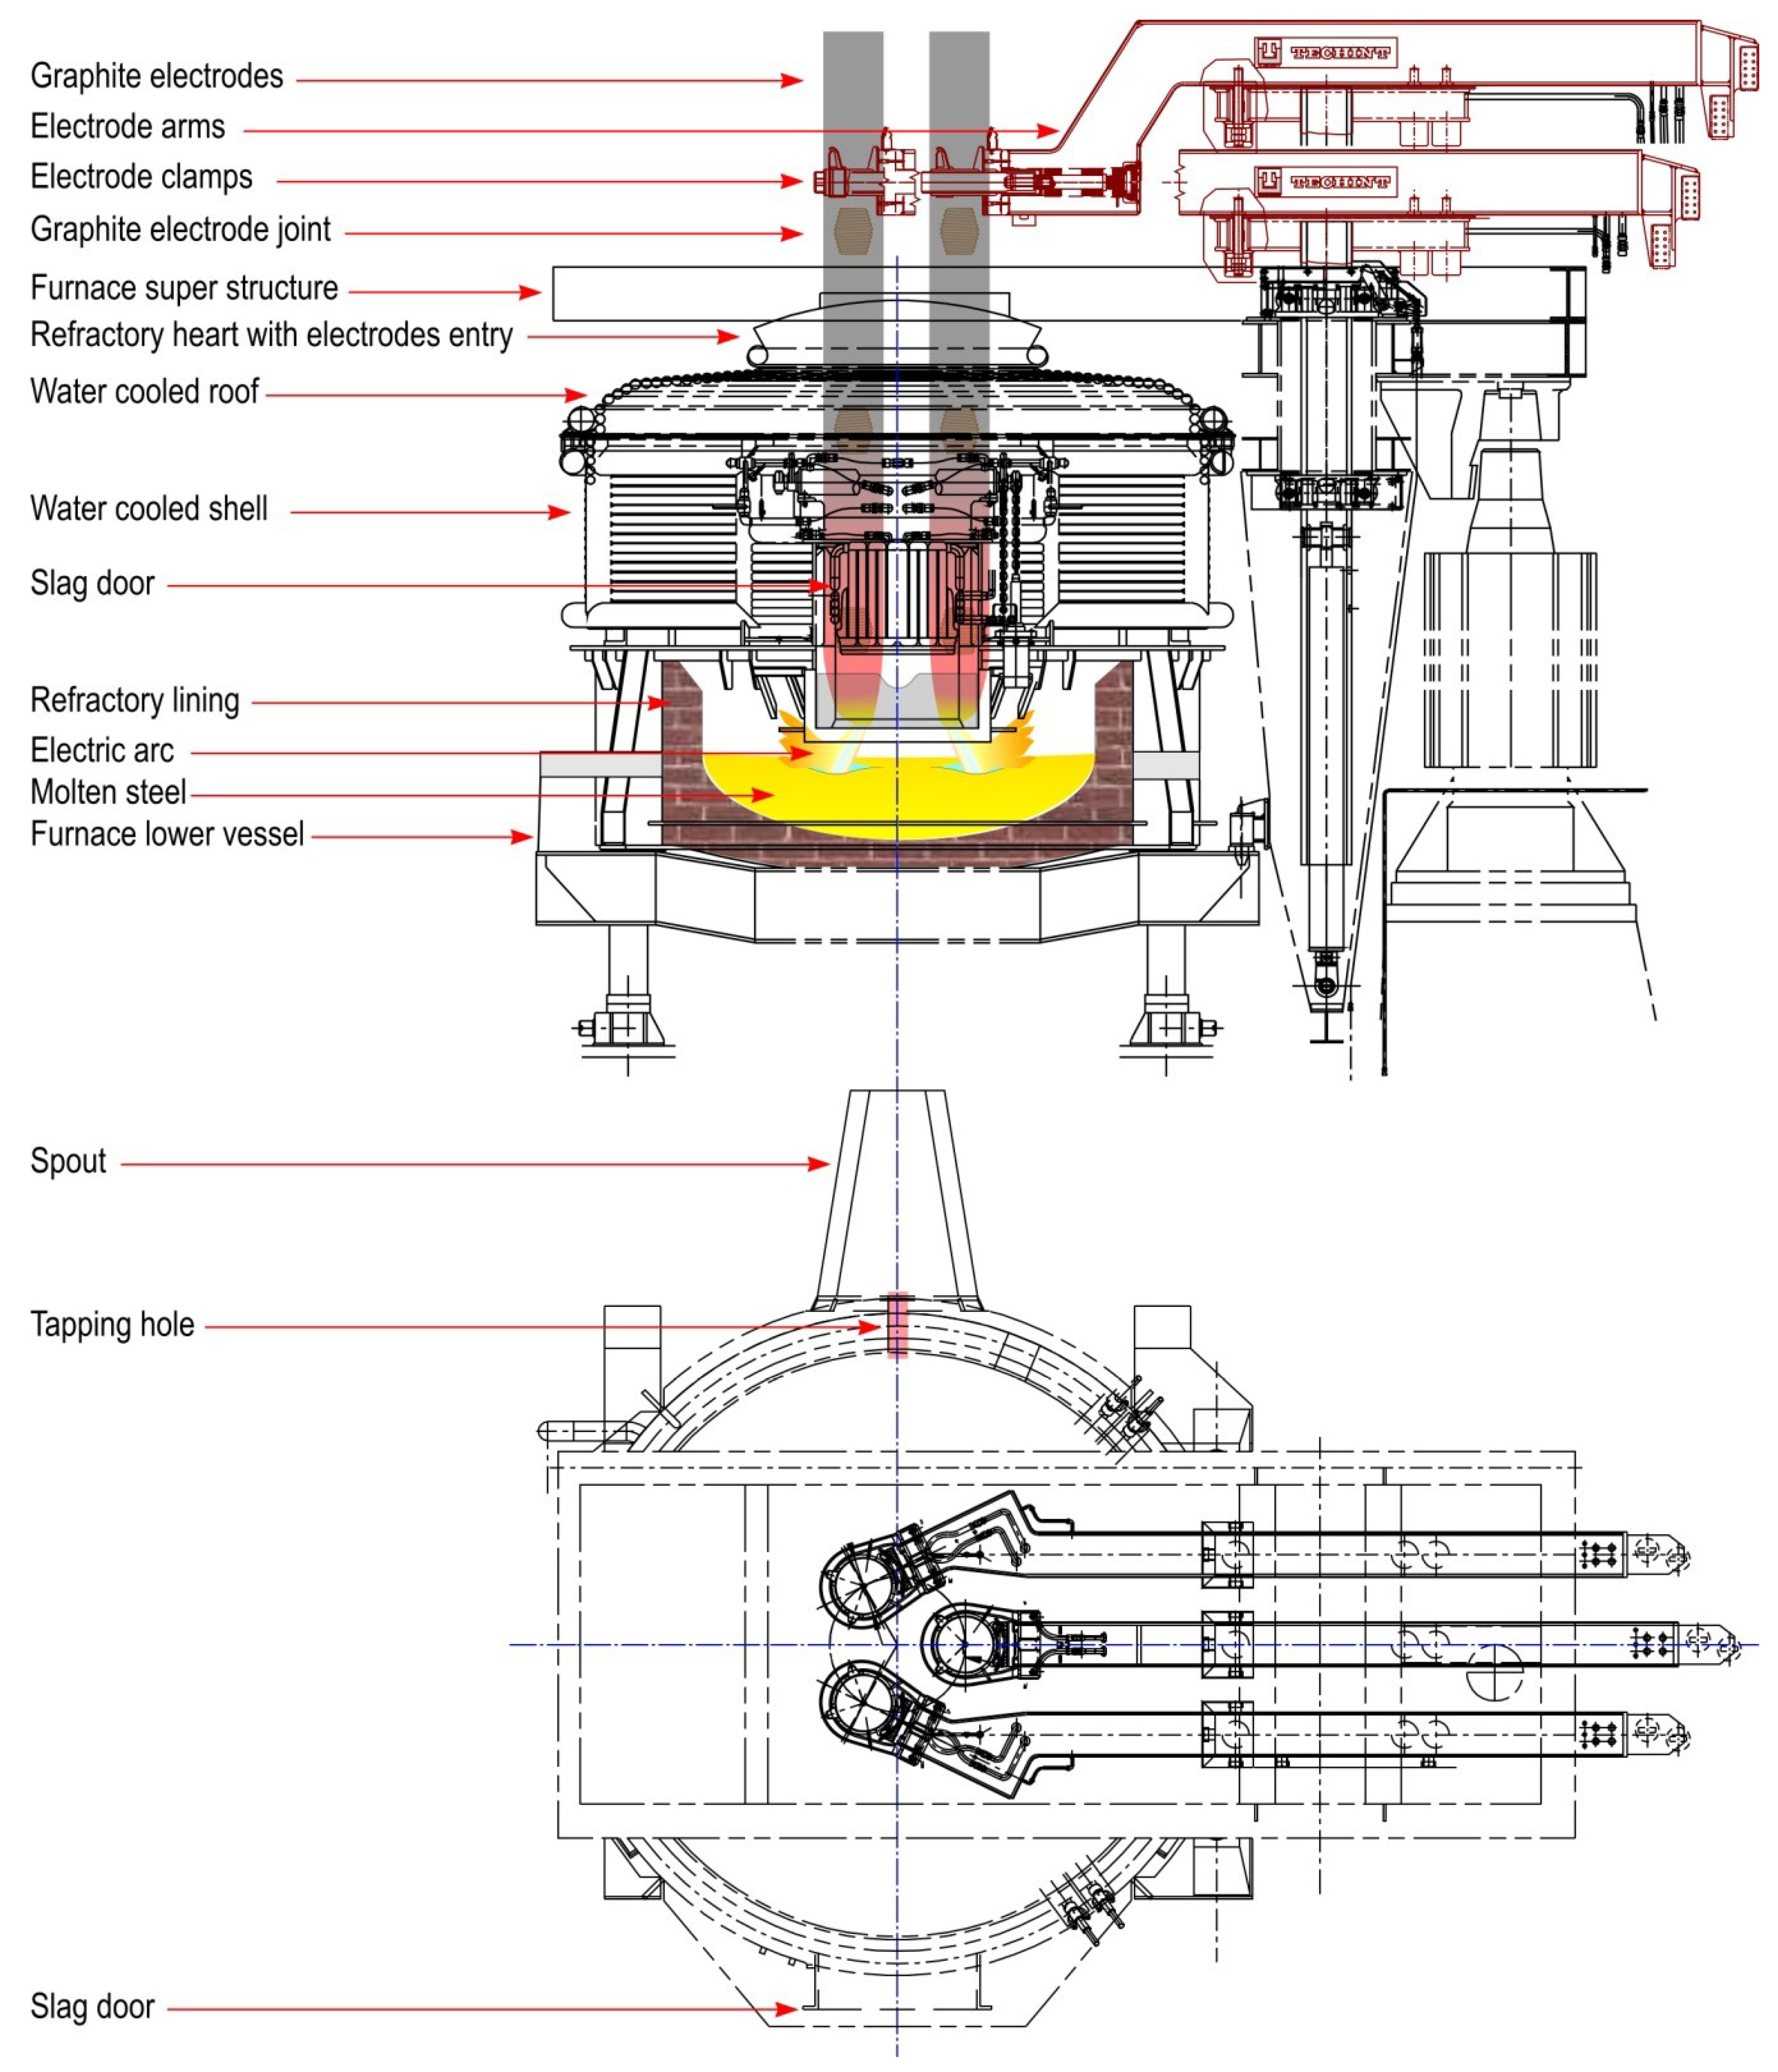 Arc Europe Ltd >> Energies | Free Full-Text | Comprehensive Electric Arc Furnace Electric Energy Consumption ...